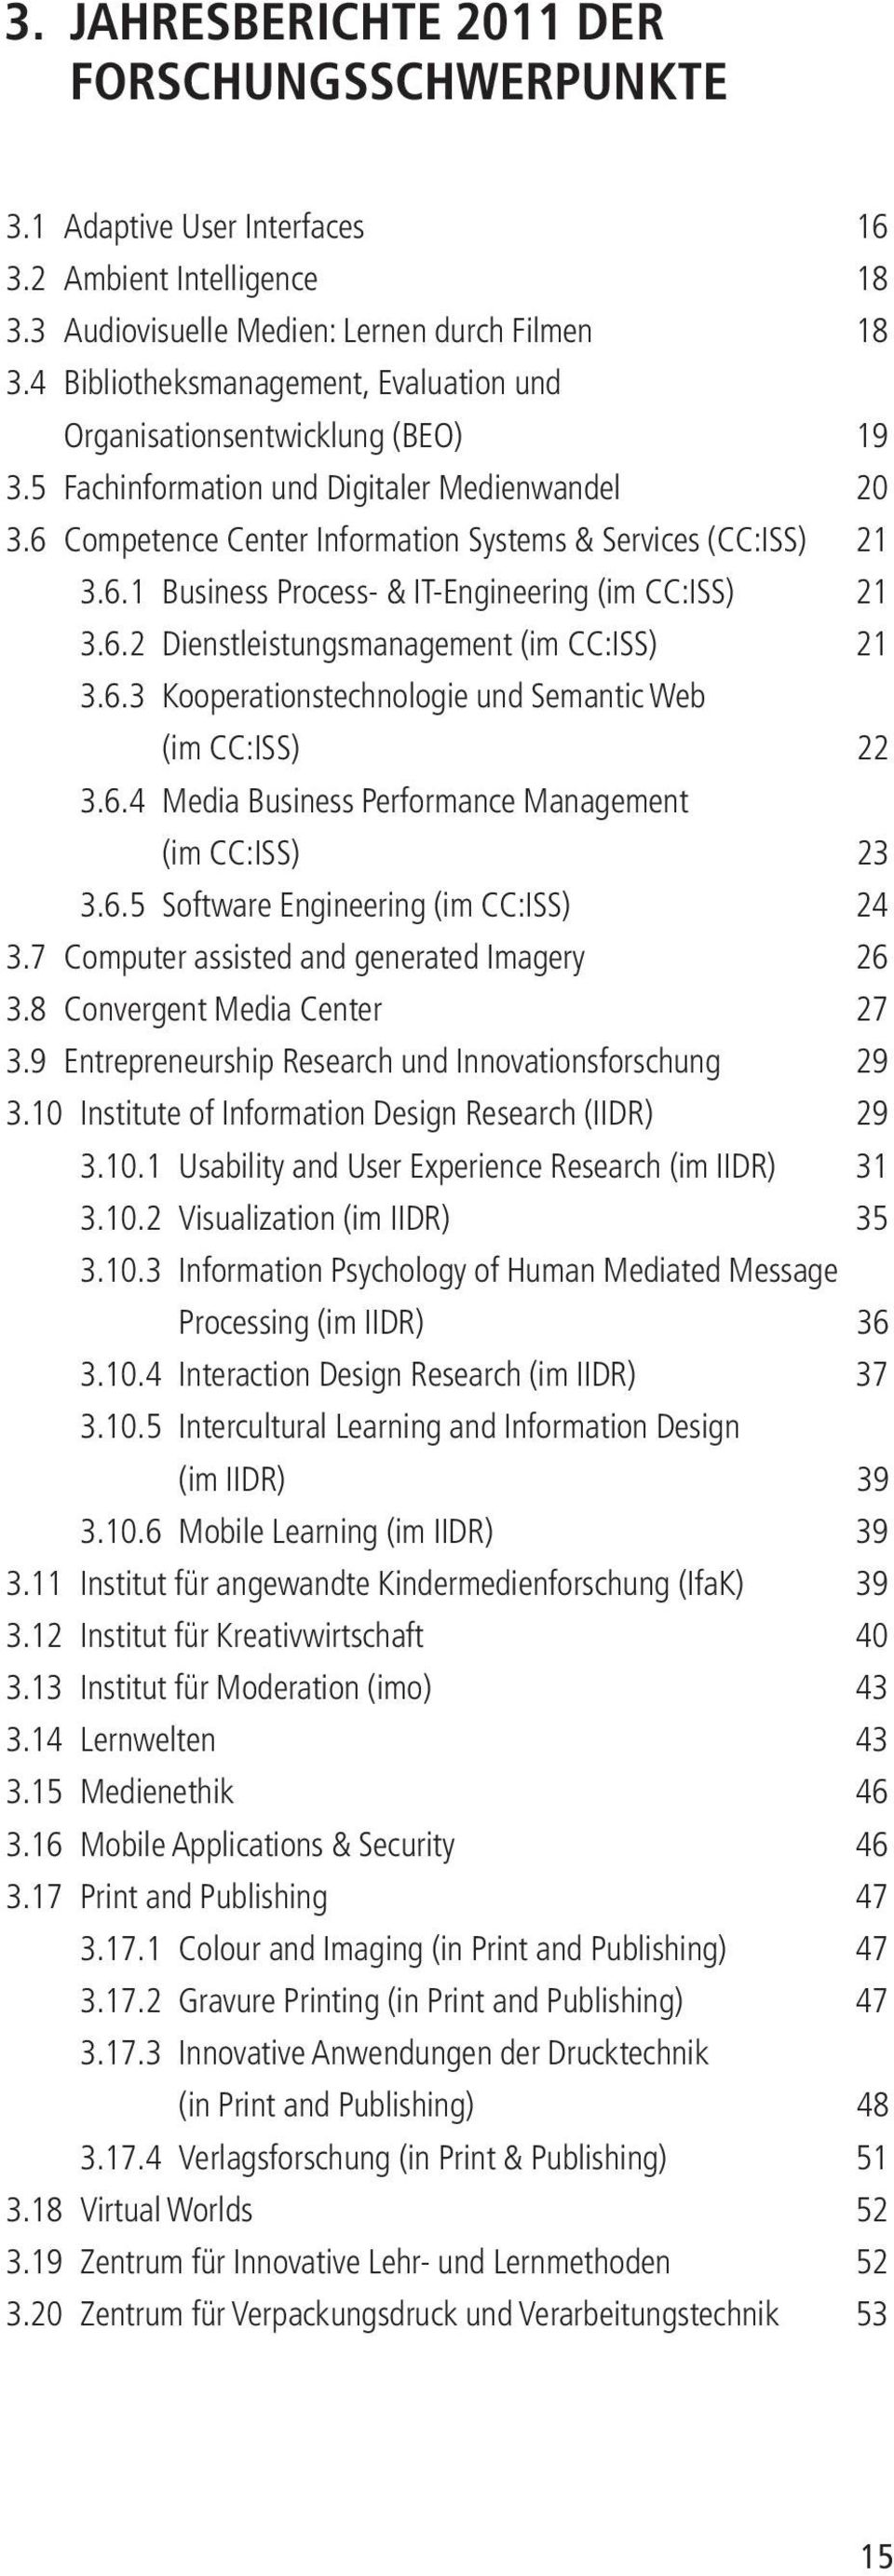 6.2 Dienstleistungsmanagement (im CC:ISS) 21 3.6.3 Kooperationstechnologie und Semantic Web (im CC:ISS) 22 3.6.4 Media Business Performance Management (im CC:ISS) 23 3.6.5 Software Engineering (im CC:ISS) 24 3.